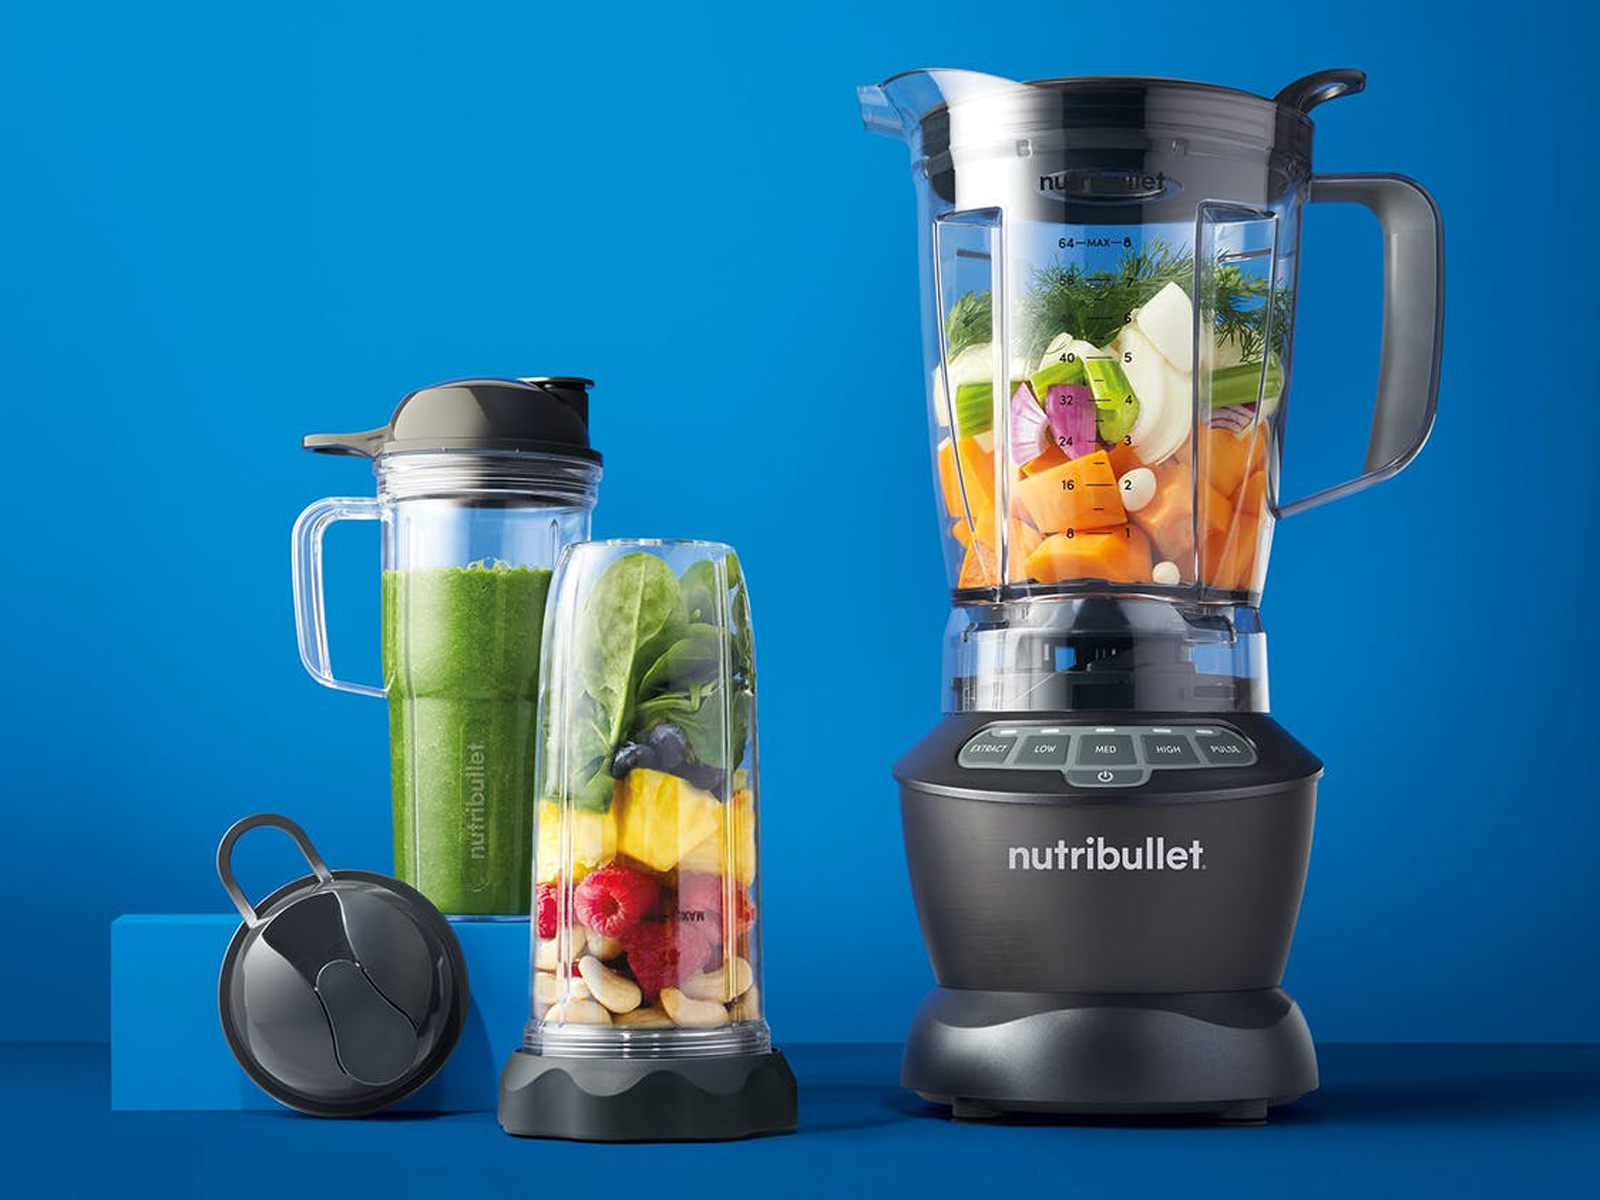 Nutribullet blender package